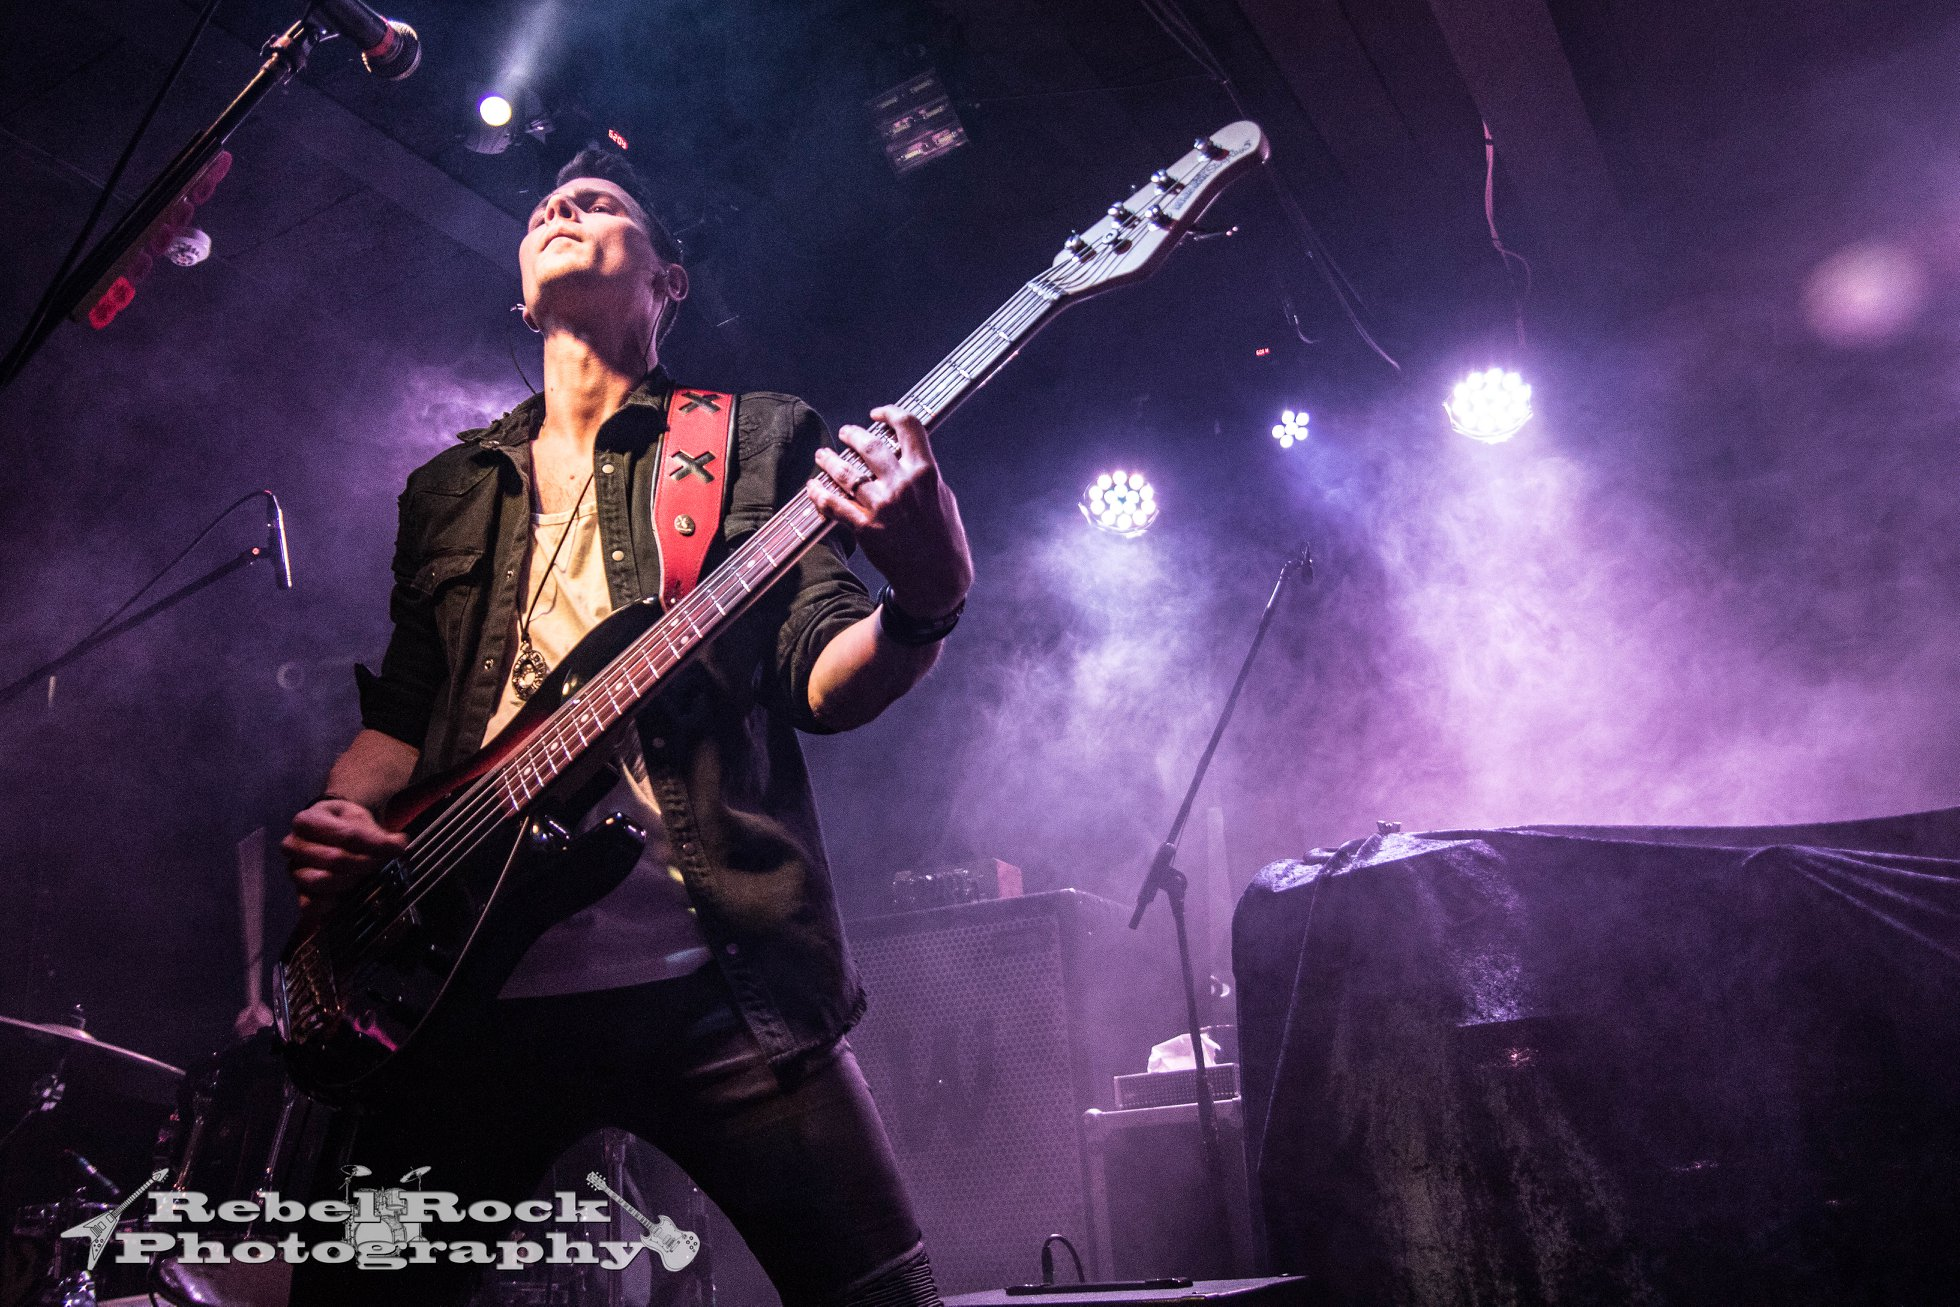 No Sleep For Lucy at Rebellion in Manchester on March 12th 2019 ©Rock Rebel Photography